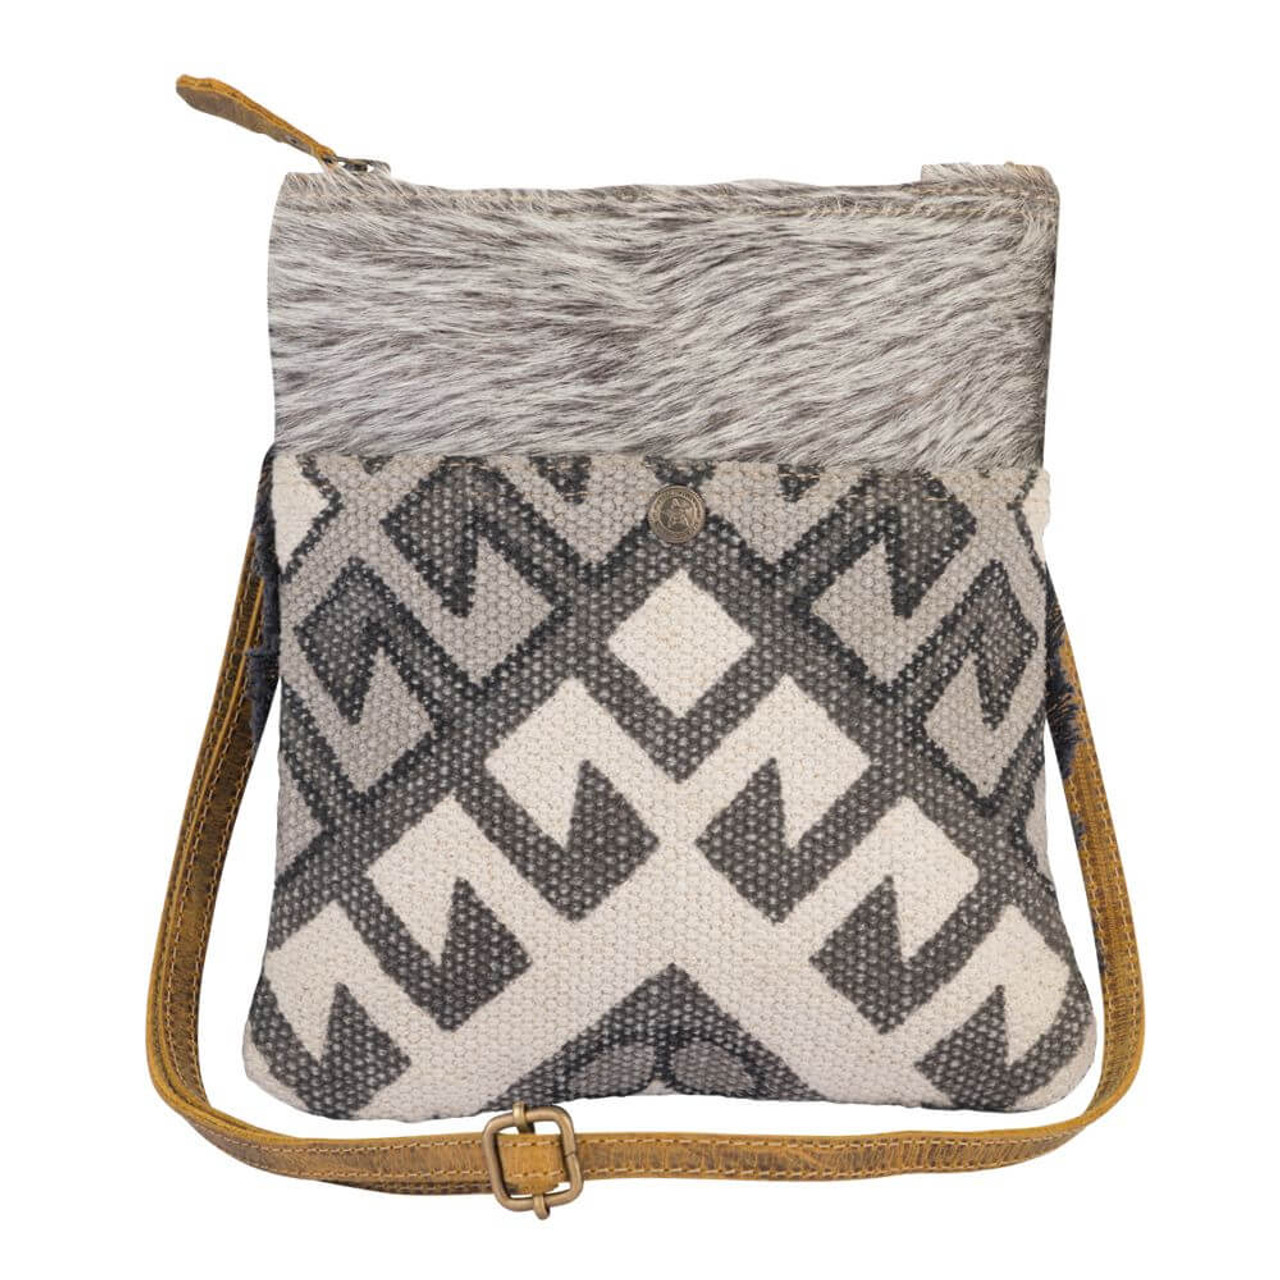 """This crossbody bag has angled aztec patterns in shades of gray on the front with gray cowhide accent at the top and dark gray fringe detail around the sides and bottom. Canvas back, fully lined slip pocket on front with snap close, zipper pocket on back; adjustable/removable shoulder strap; zipper close at top; interior is fully lined.8.5"""" wide, 10.75"""" high."""